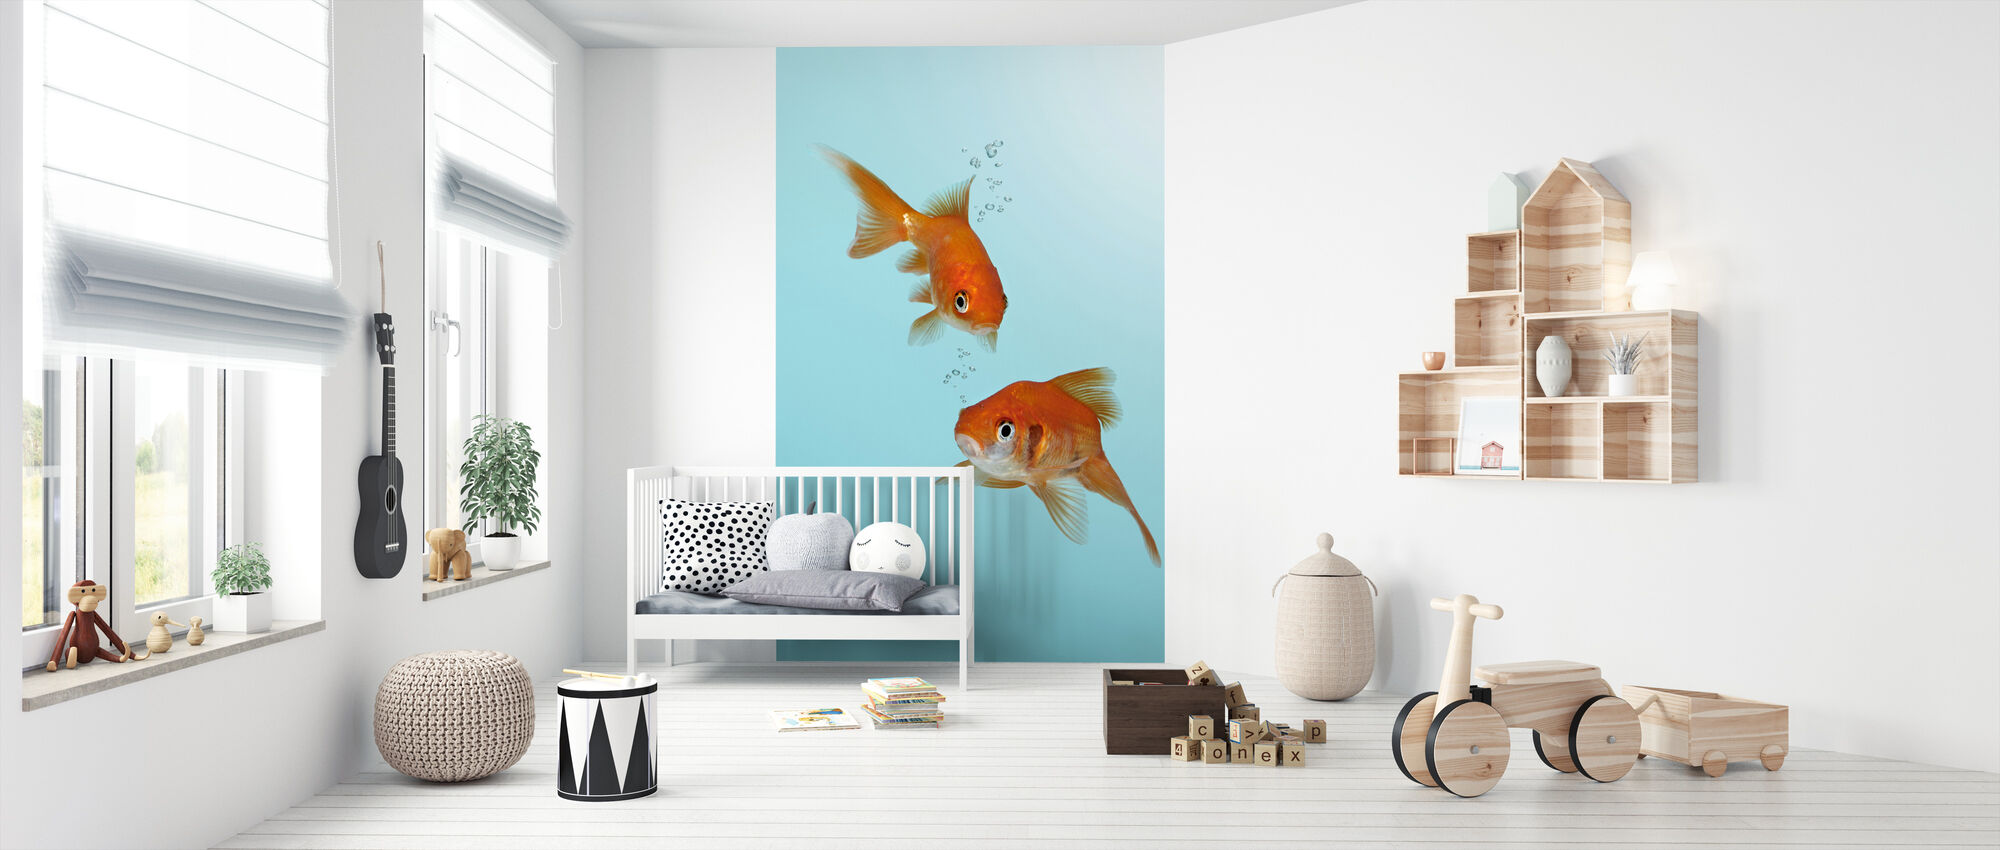 A Pair of Goldfish - Wallpaper - Nursery